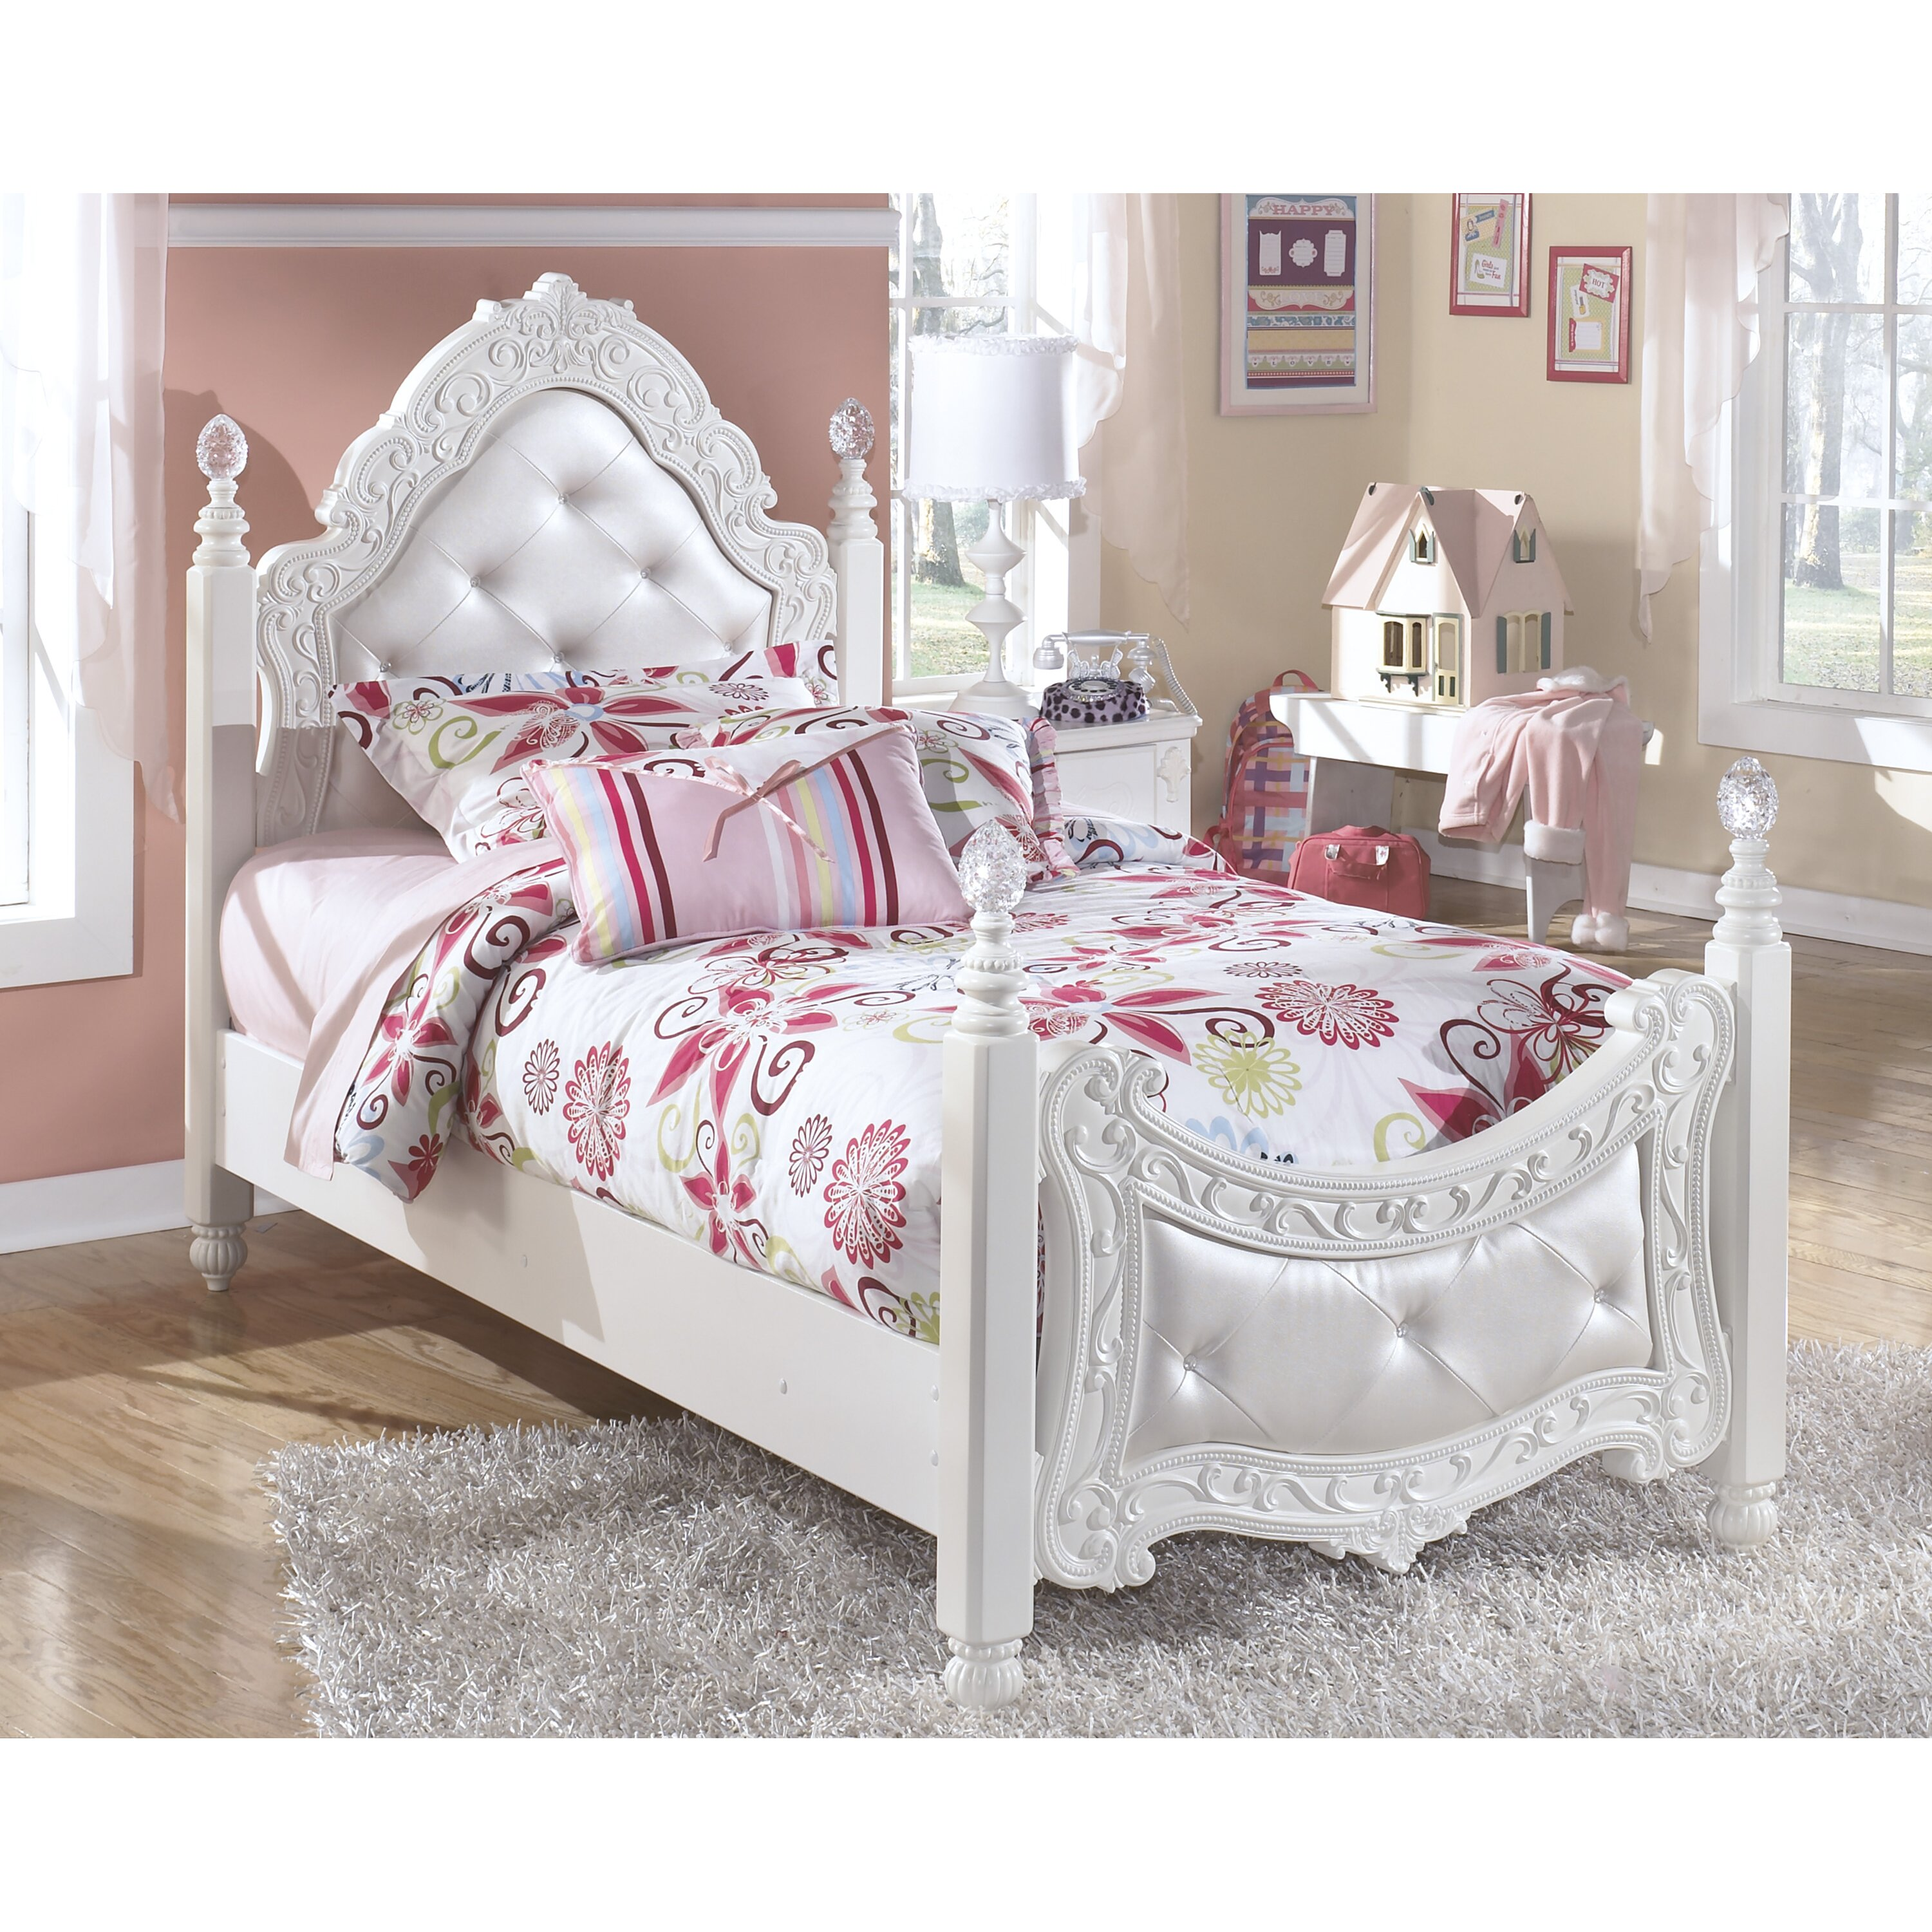 Signature Design By Ashley Exquisite Four Poster Bed